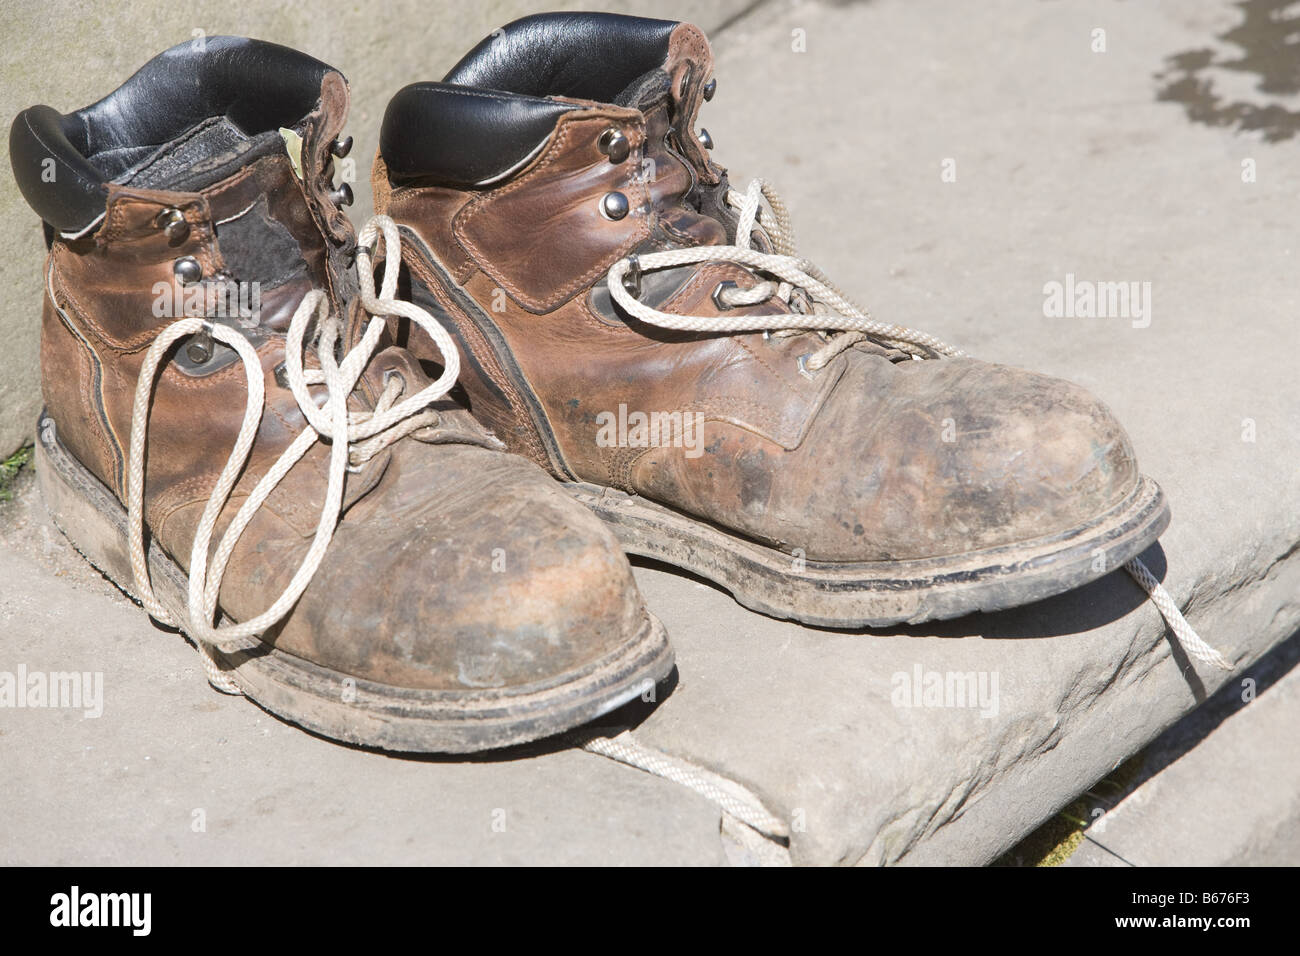 Worn boots - Stock Image